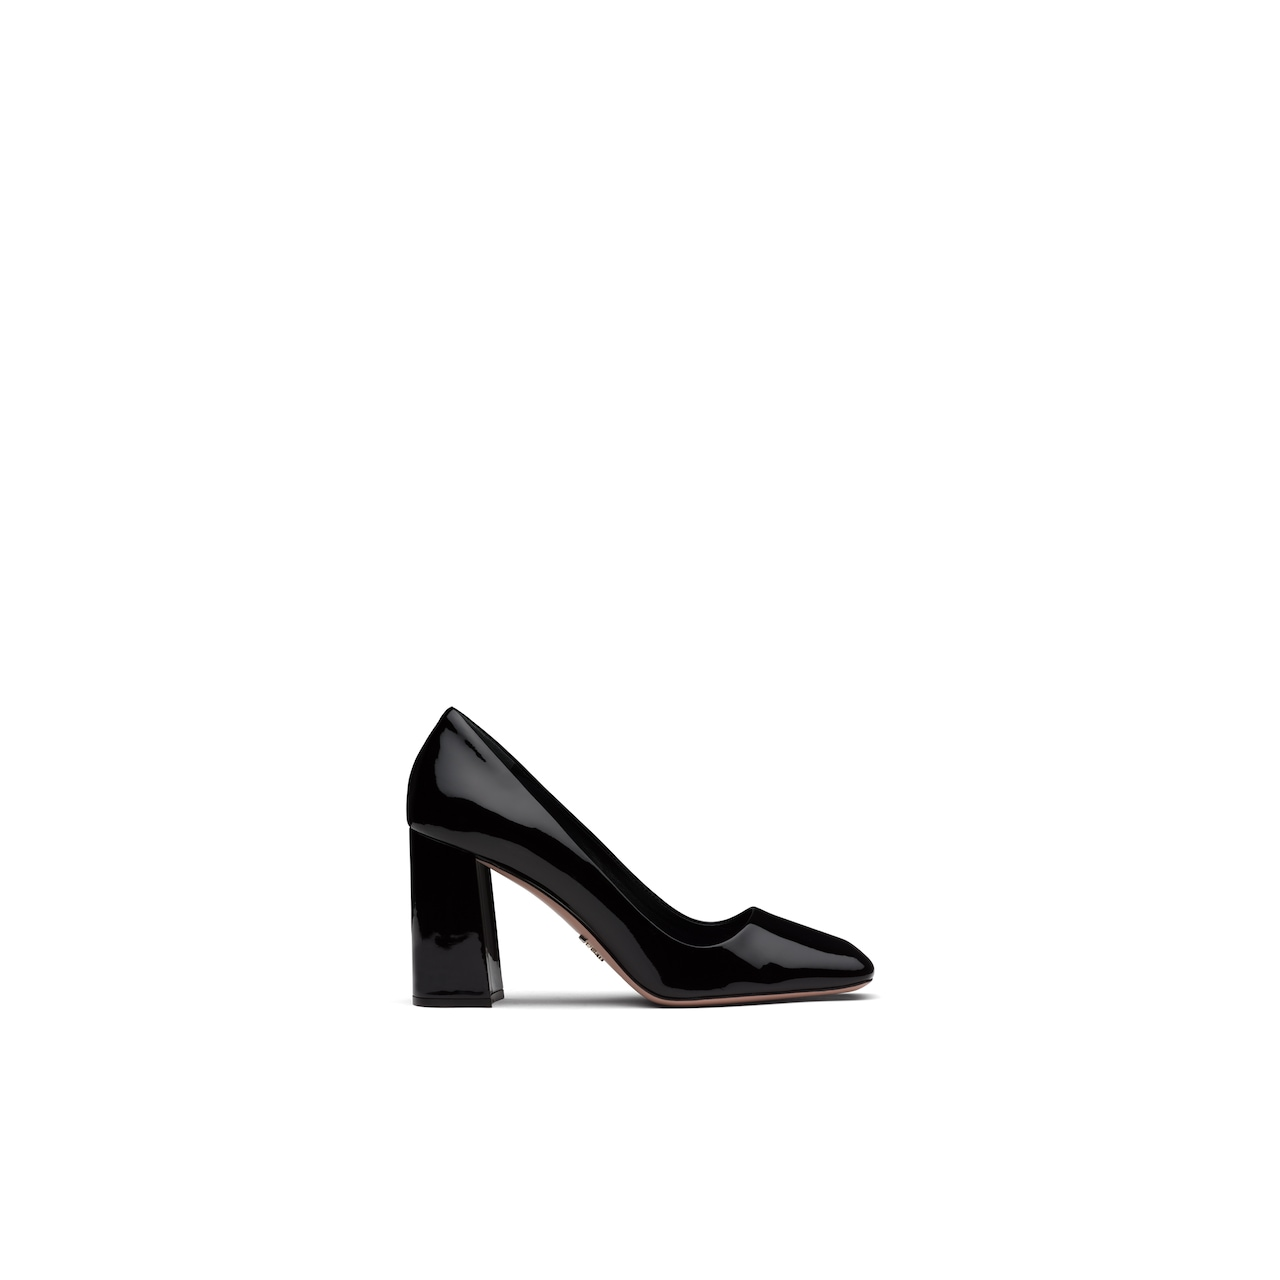 Prada Patent leather pumps 2